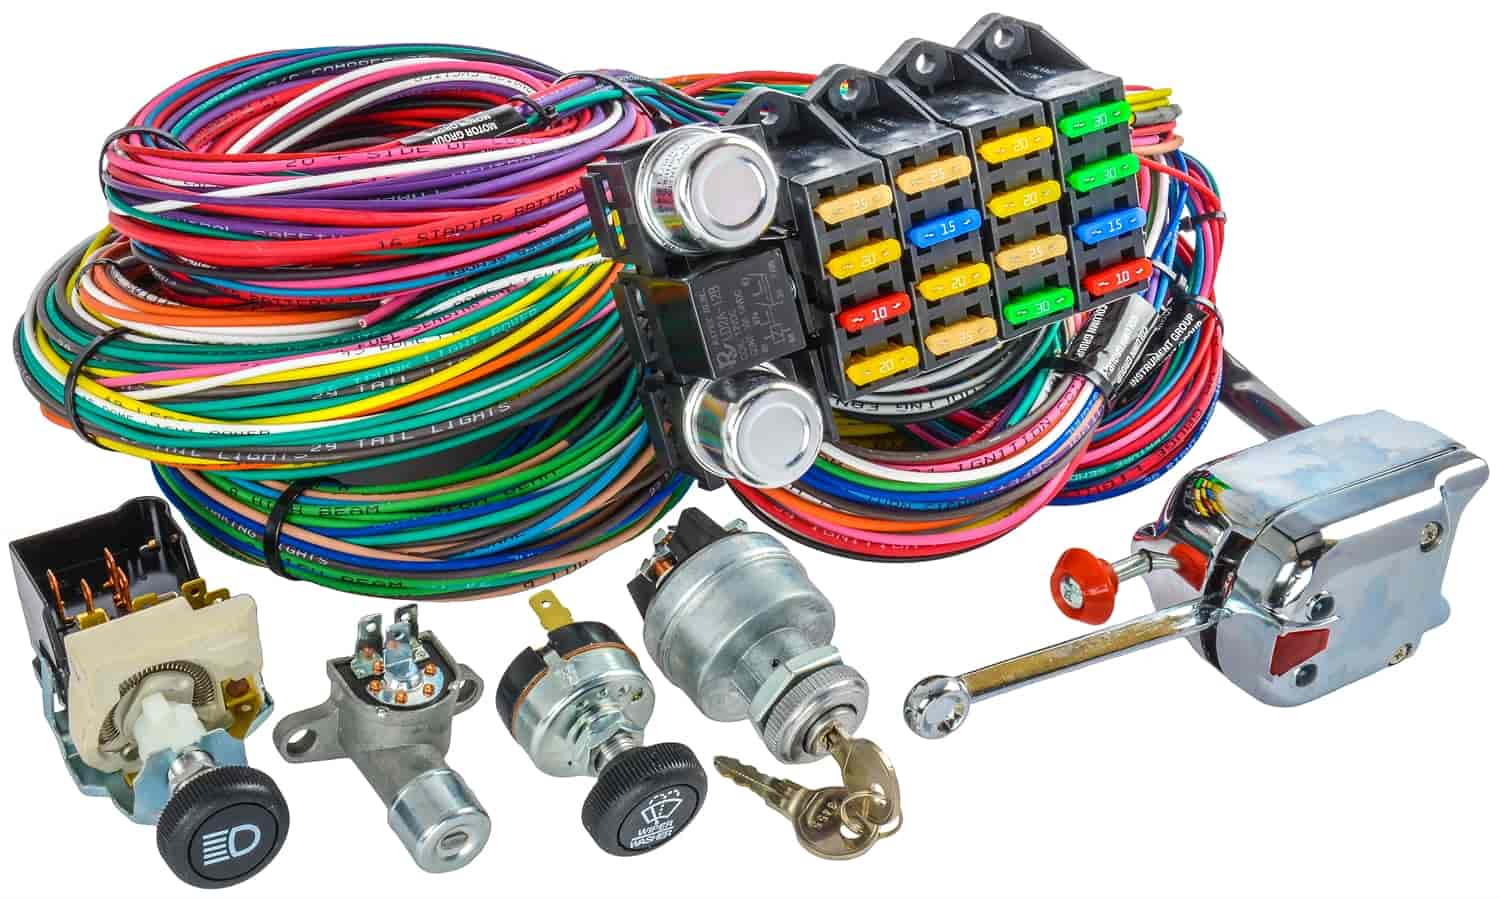 555 10405k jegs performance products 10405k universal wiring harness universal wiring harness kits at mifinder.co